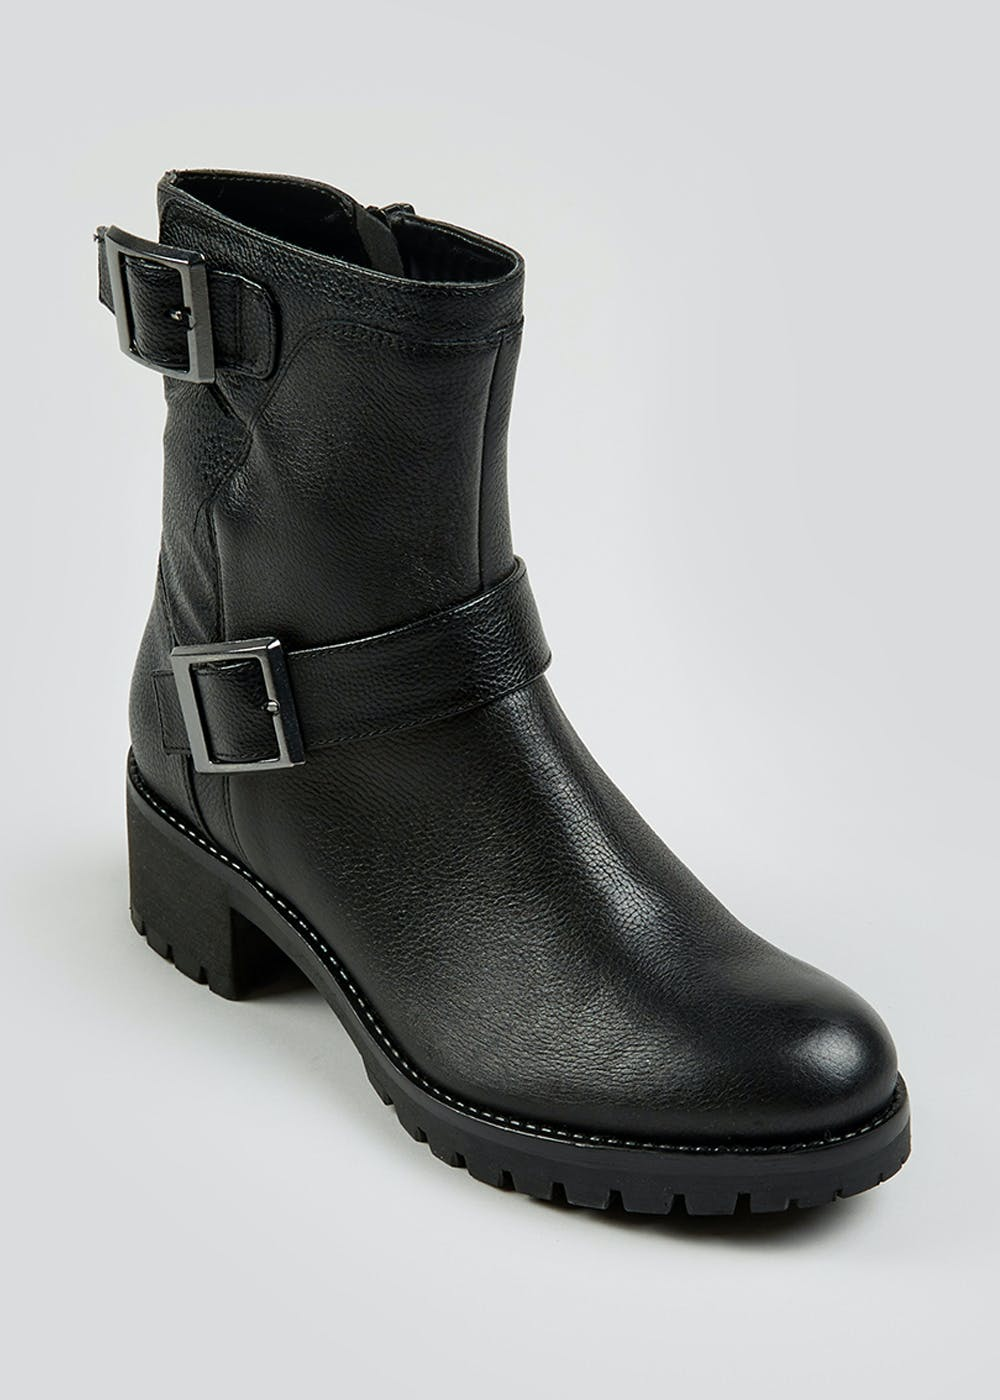 Soleflex Real Leather Biker Boots by Matalan